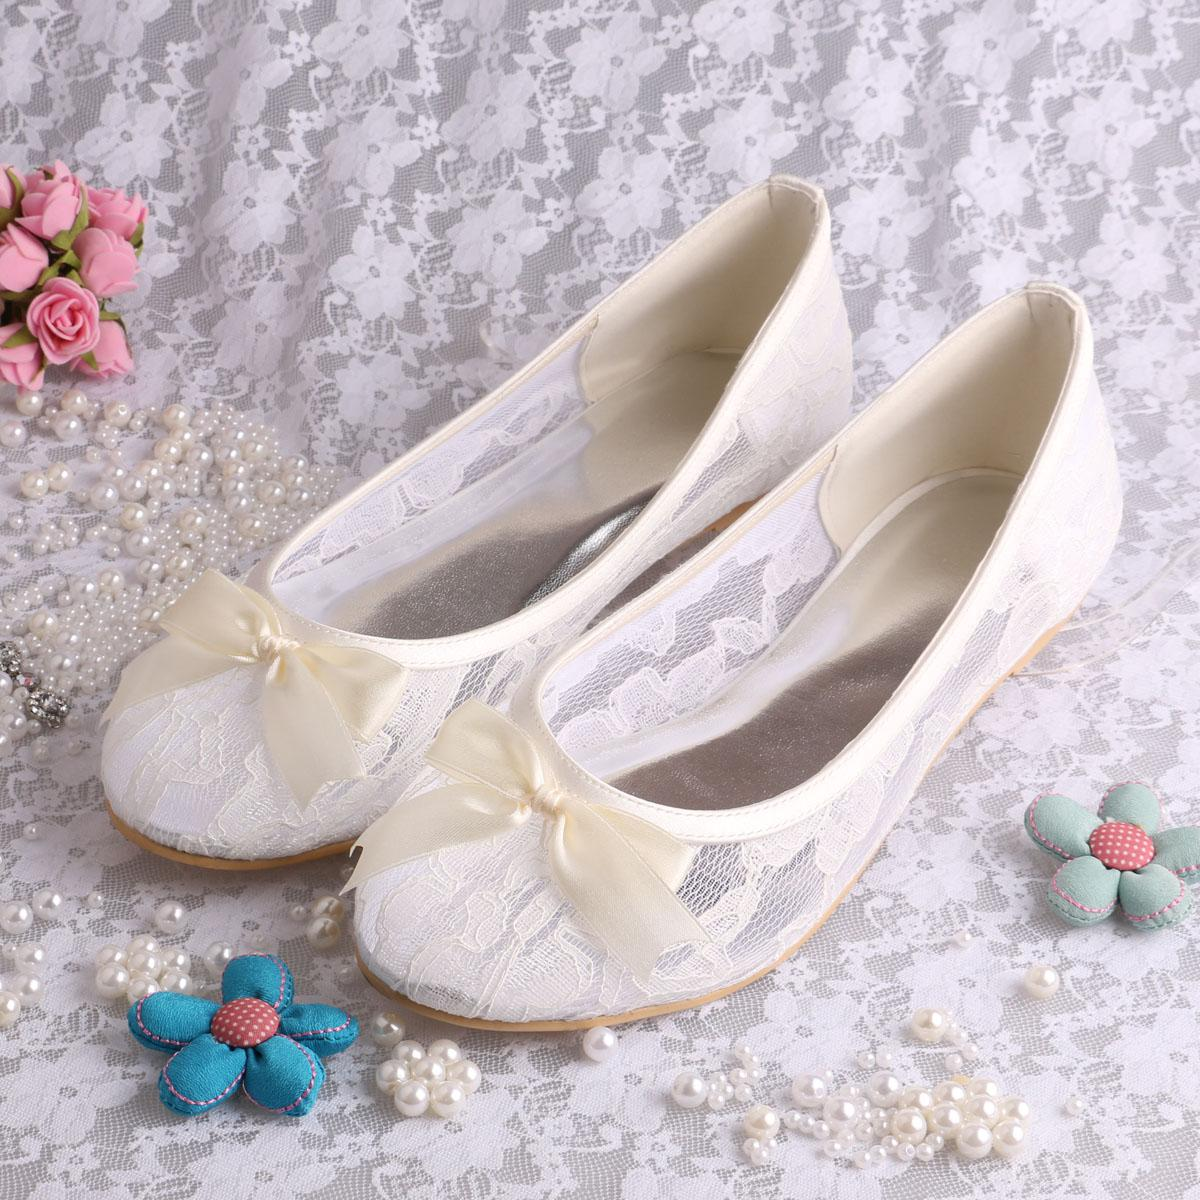 Free Drop Shipping Ivory Lace Ballet Flats Bridal Wedding Shoes